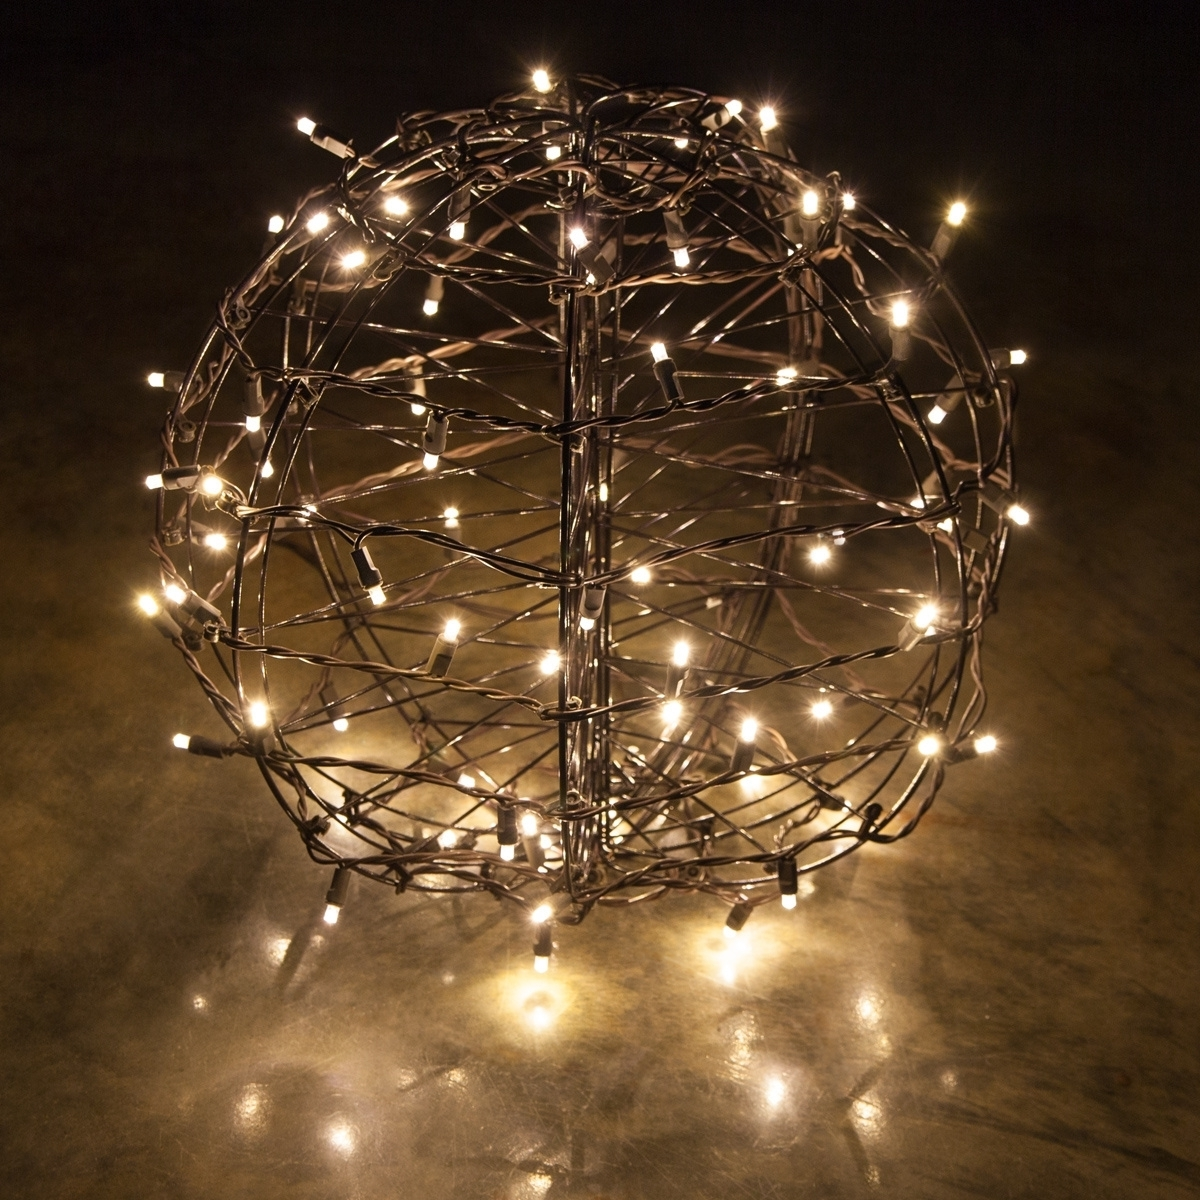 Hanging Outdoor Christmas Lights In Trees Inside Well Liked Outdoor Hanging Sphere Lights • Outdoor Lighting (View 12 of 20)